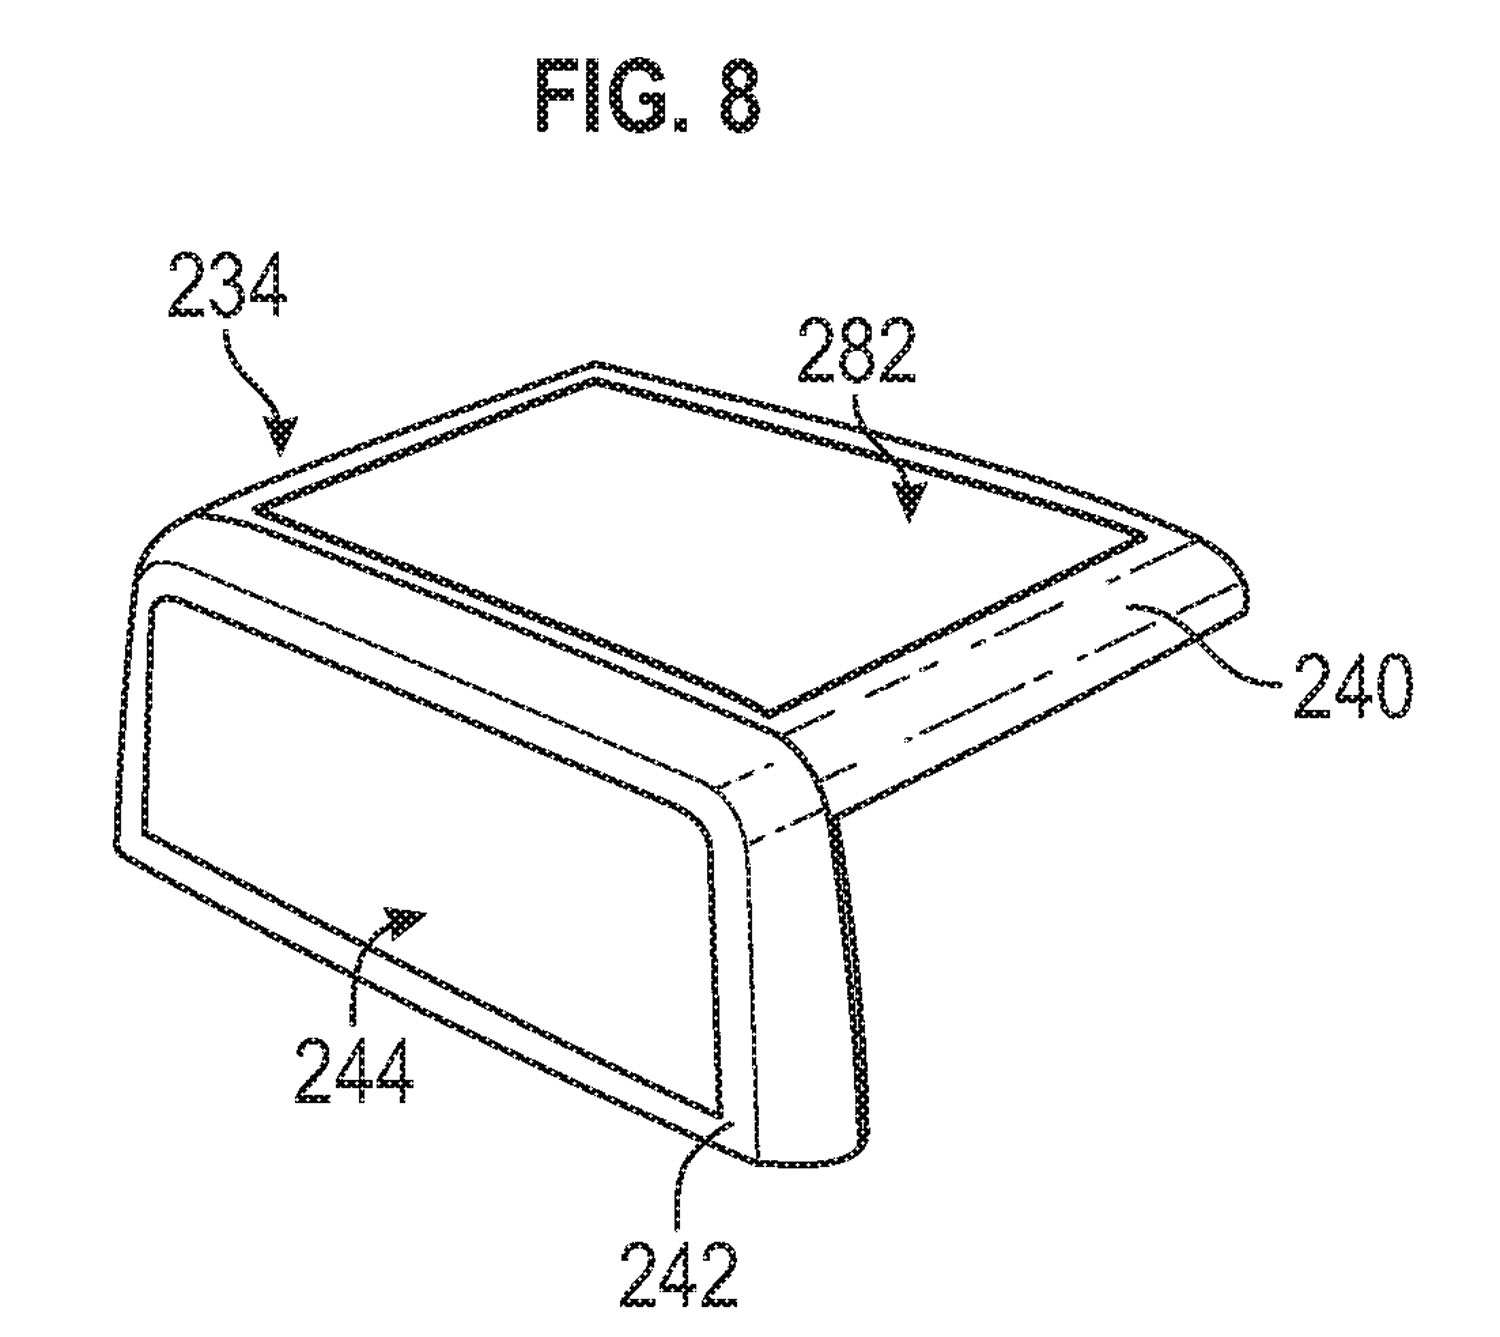 Ford-Convertible-Truck-Top-Patent-002.jpg